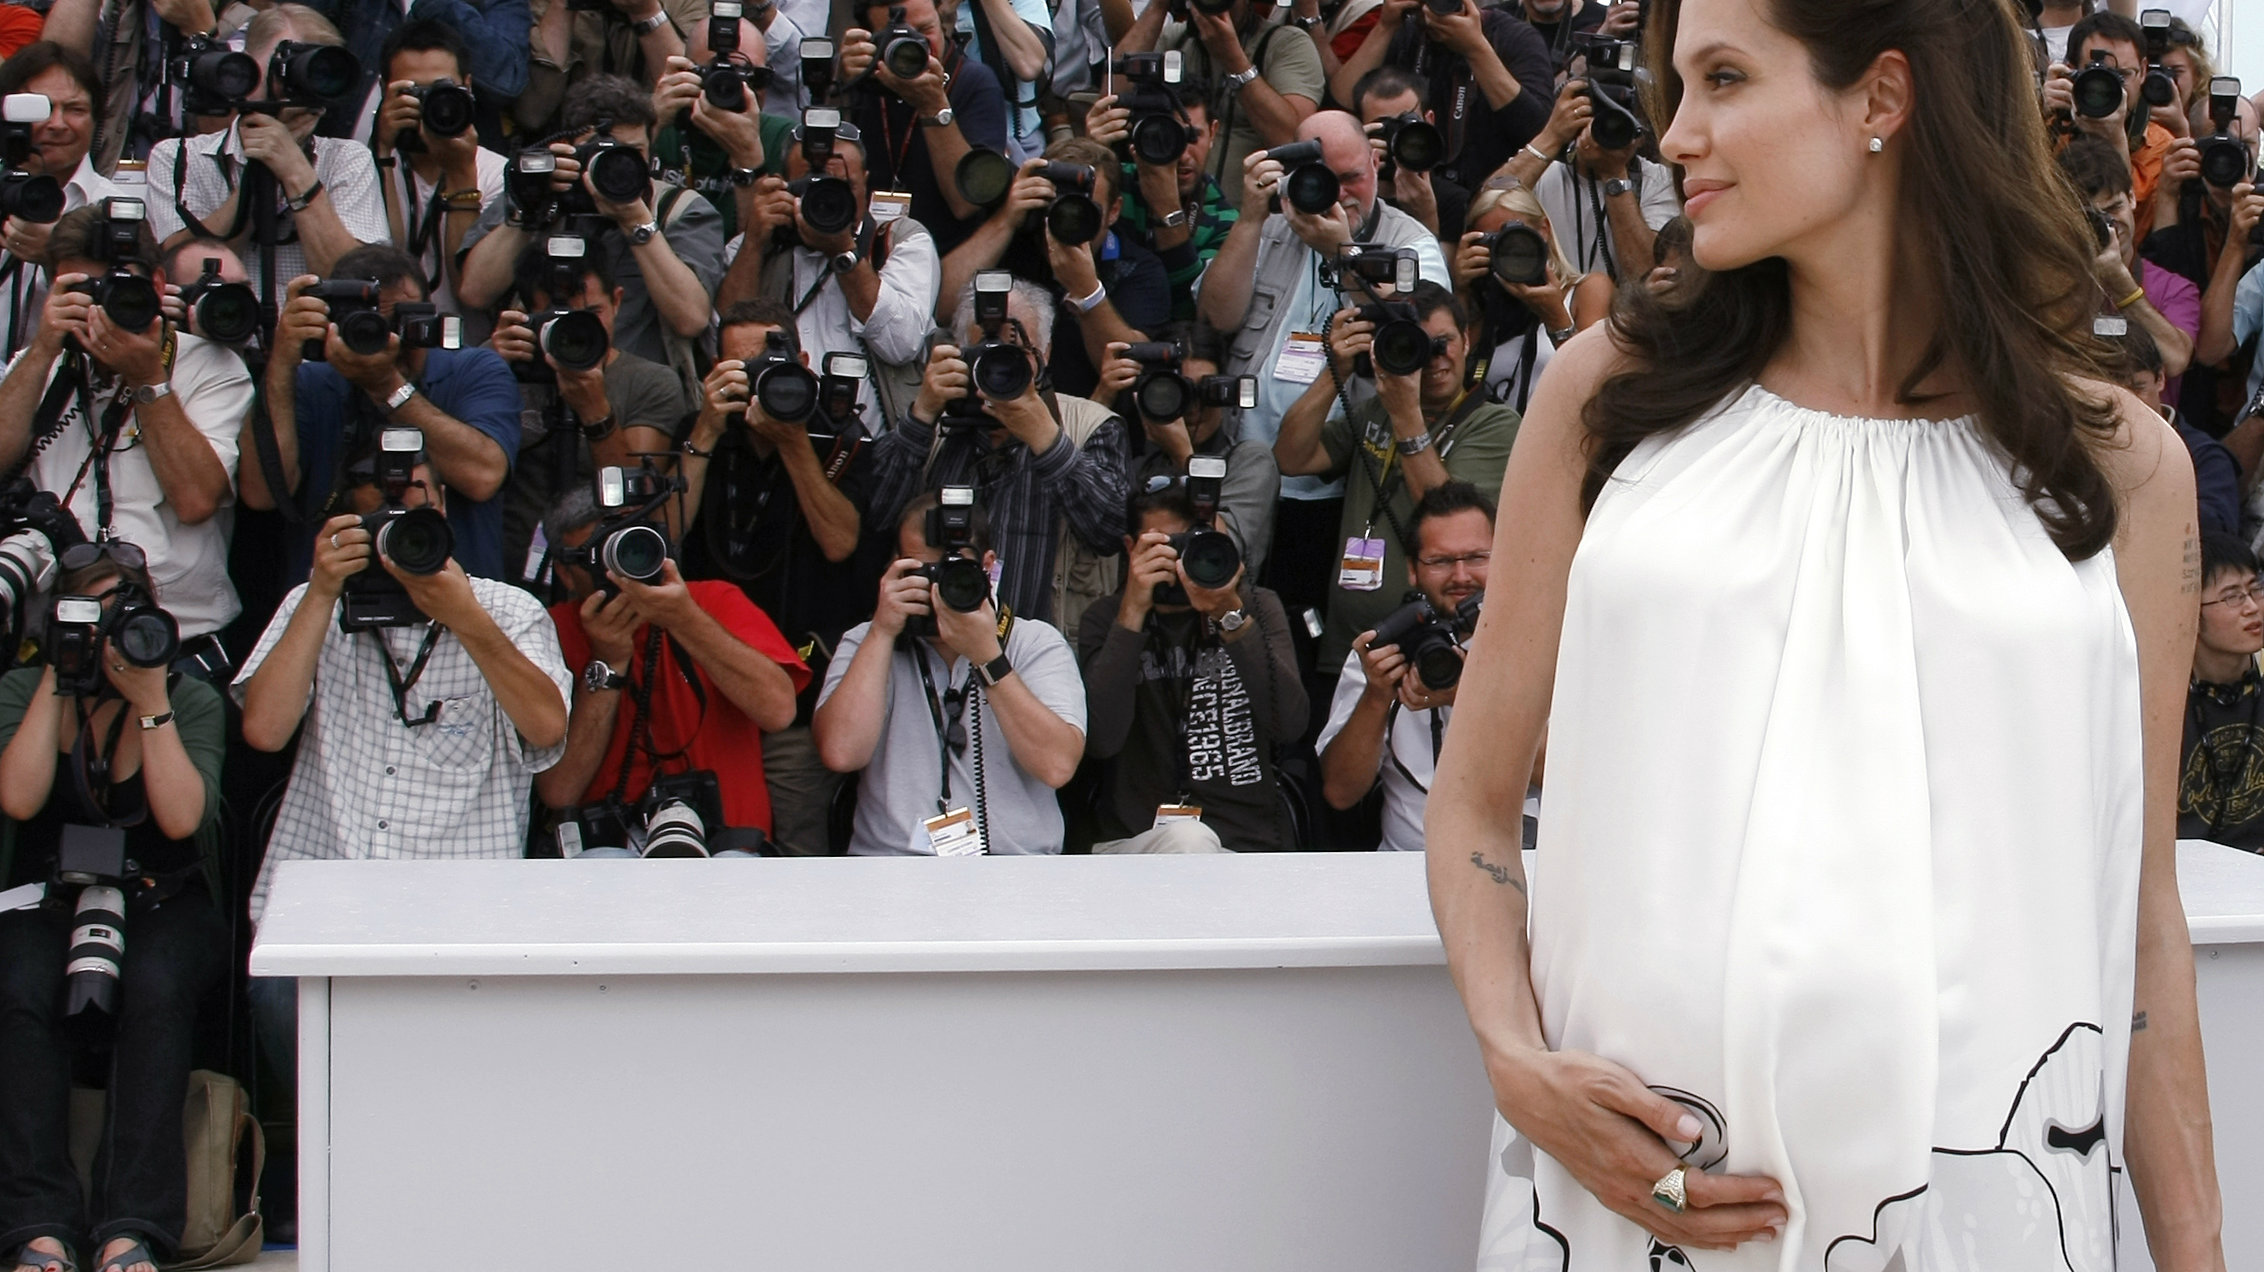 """Voice actor Angelina Jolie places her hand on her stomach during a photocall for the animated film """"Kung Fu Panda"""" by directors Mark Osborne and John Stevenson at the 61st Cannes Film Festival May 15, 2008. REUTERS/Eric Gaillard (FRANCE)"""